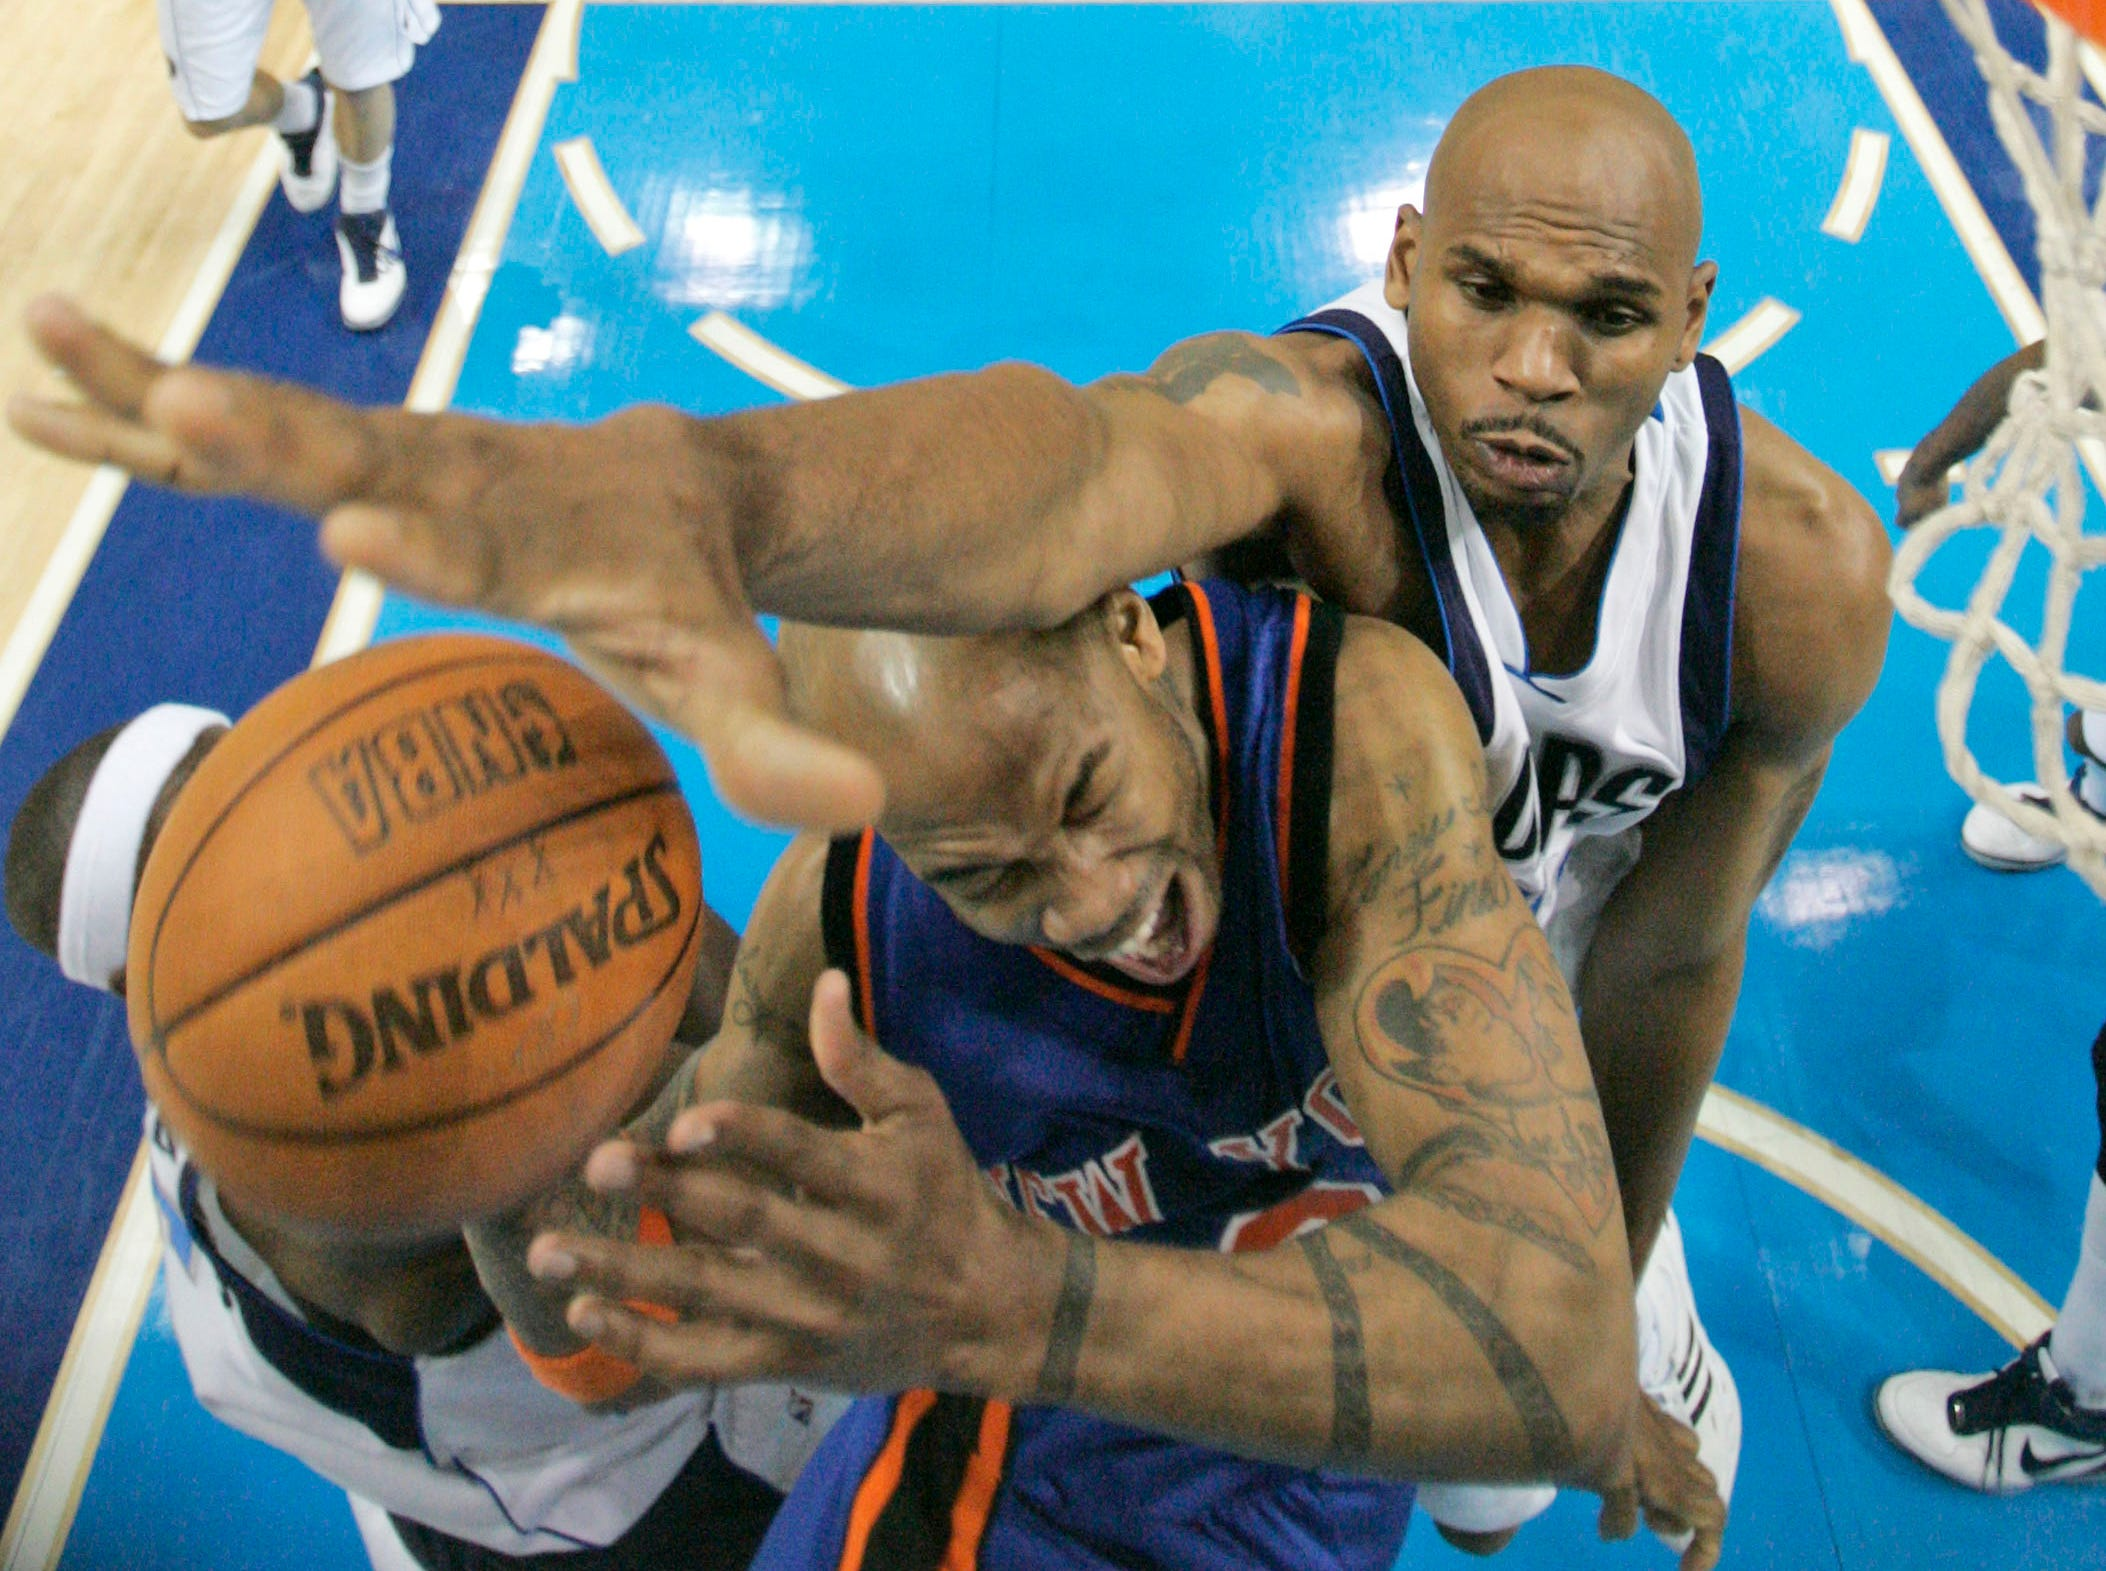 Dallas Mavericks guard Jerry Stackhouse, top, fouls New York Knicks guard Stephon Marbury (3) as Marbury tries to score in the second half of an NBA basketball game in this March 30, 2007, file photo in Dallas. Dallas won 105-103.